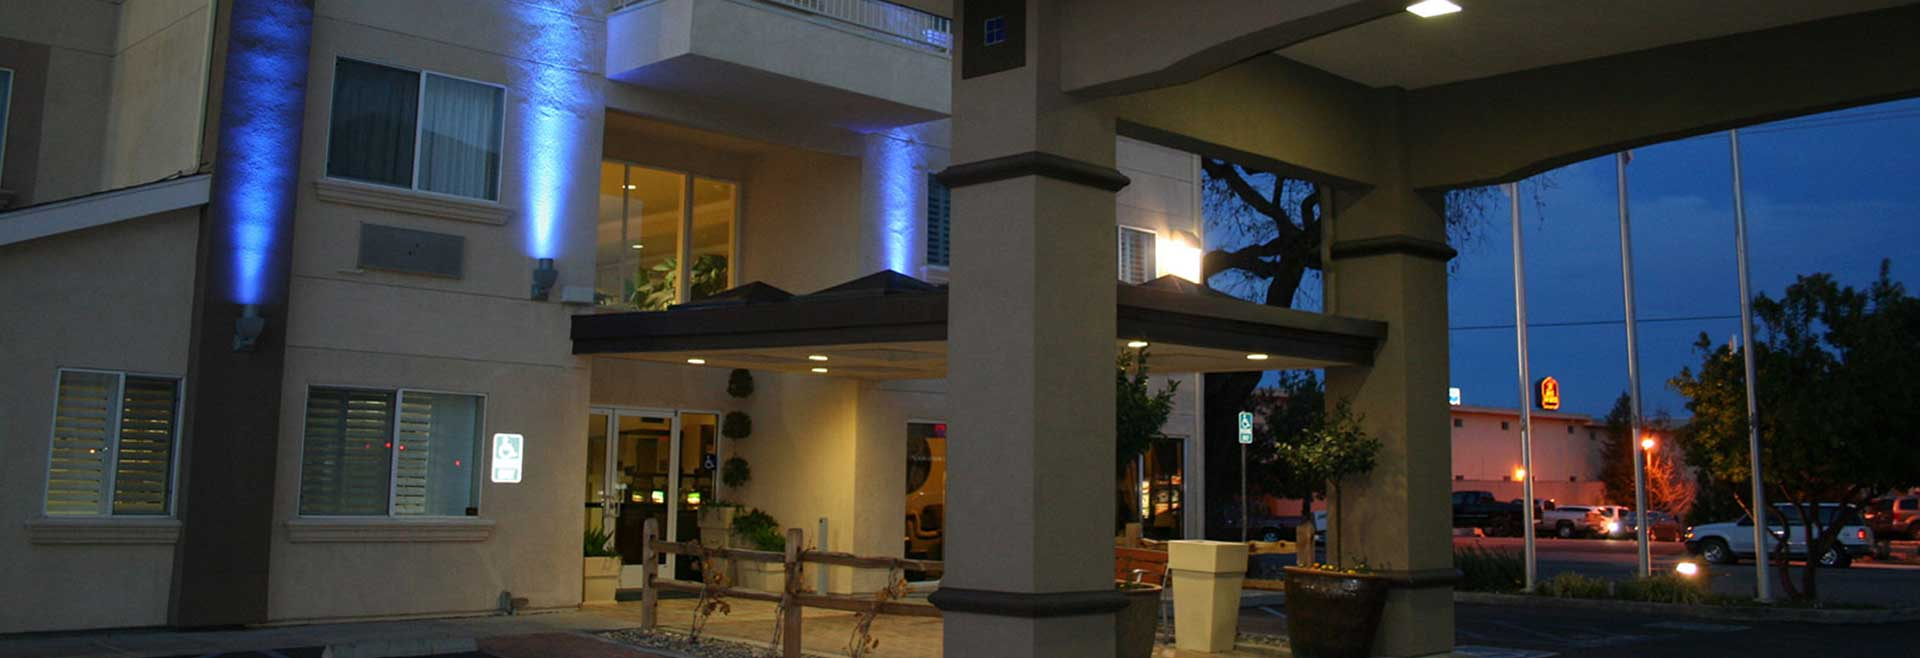 Holiday Inn Express Hotel & Suites - Paso Robles, California